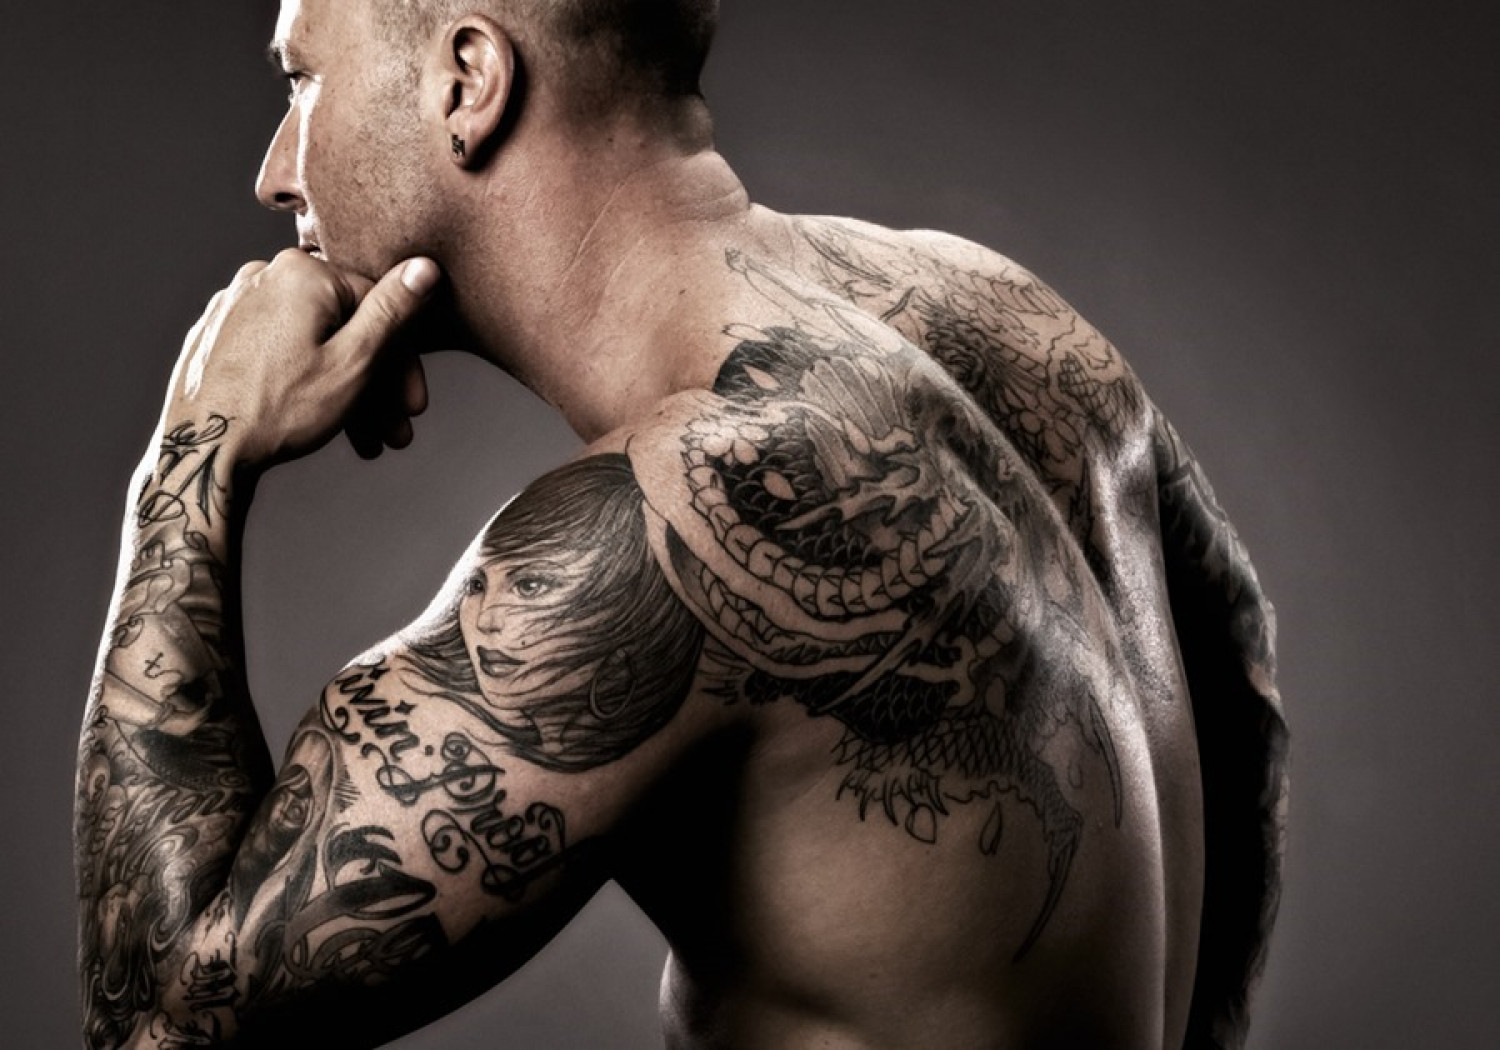 Sleeve tattoos significant Infographic